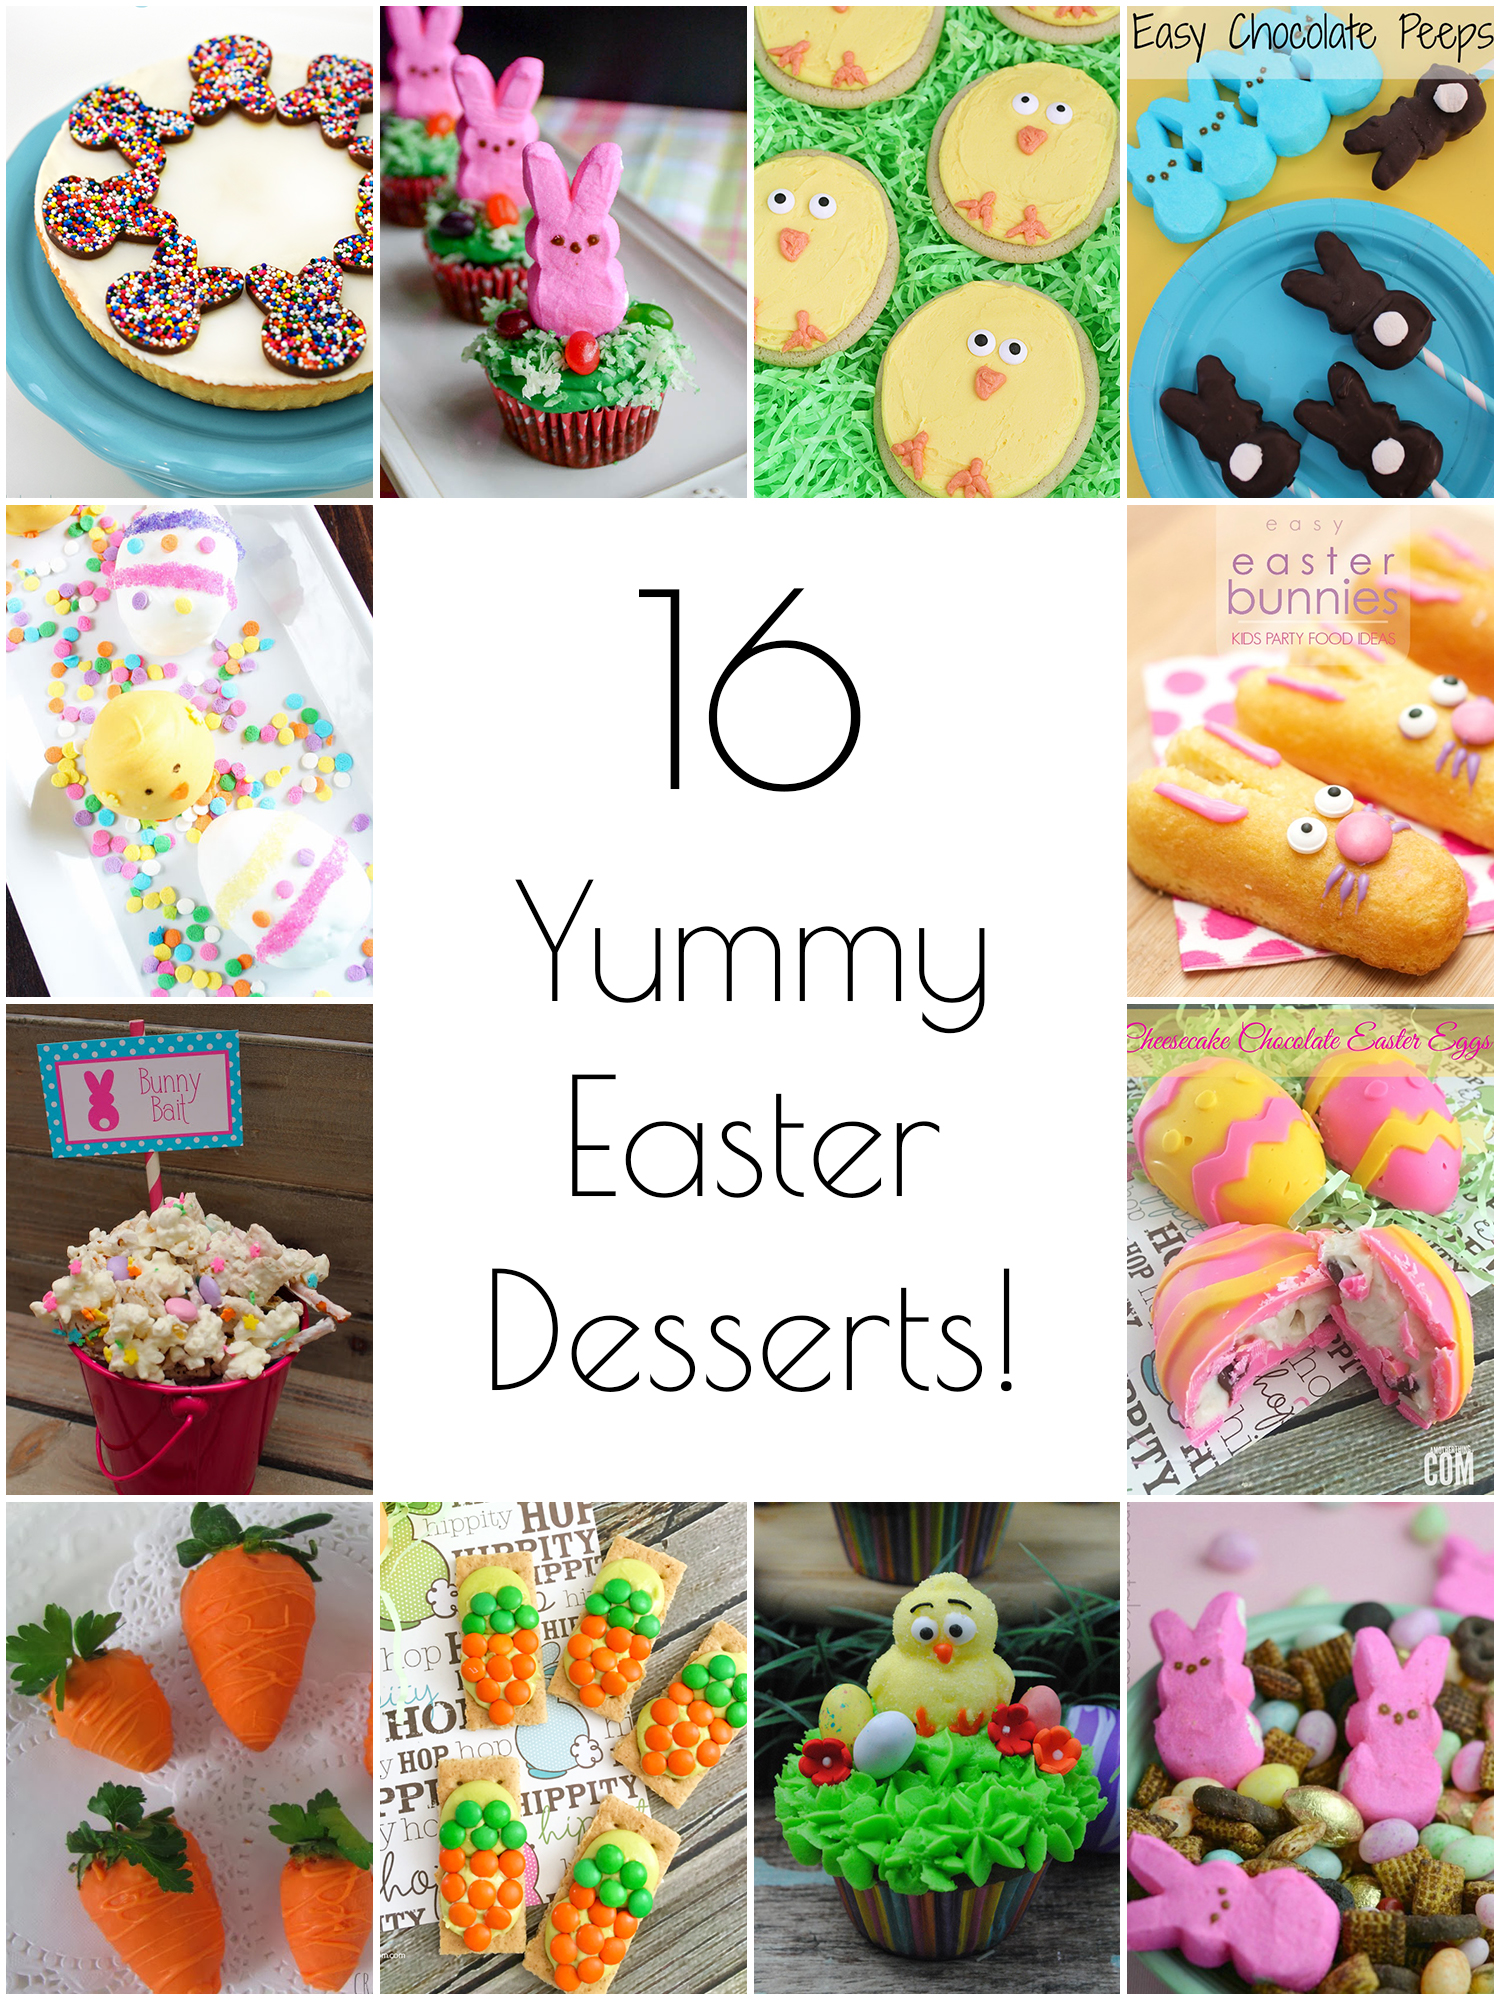 So Creative 16 Yummy Easter Desserts